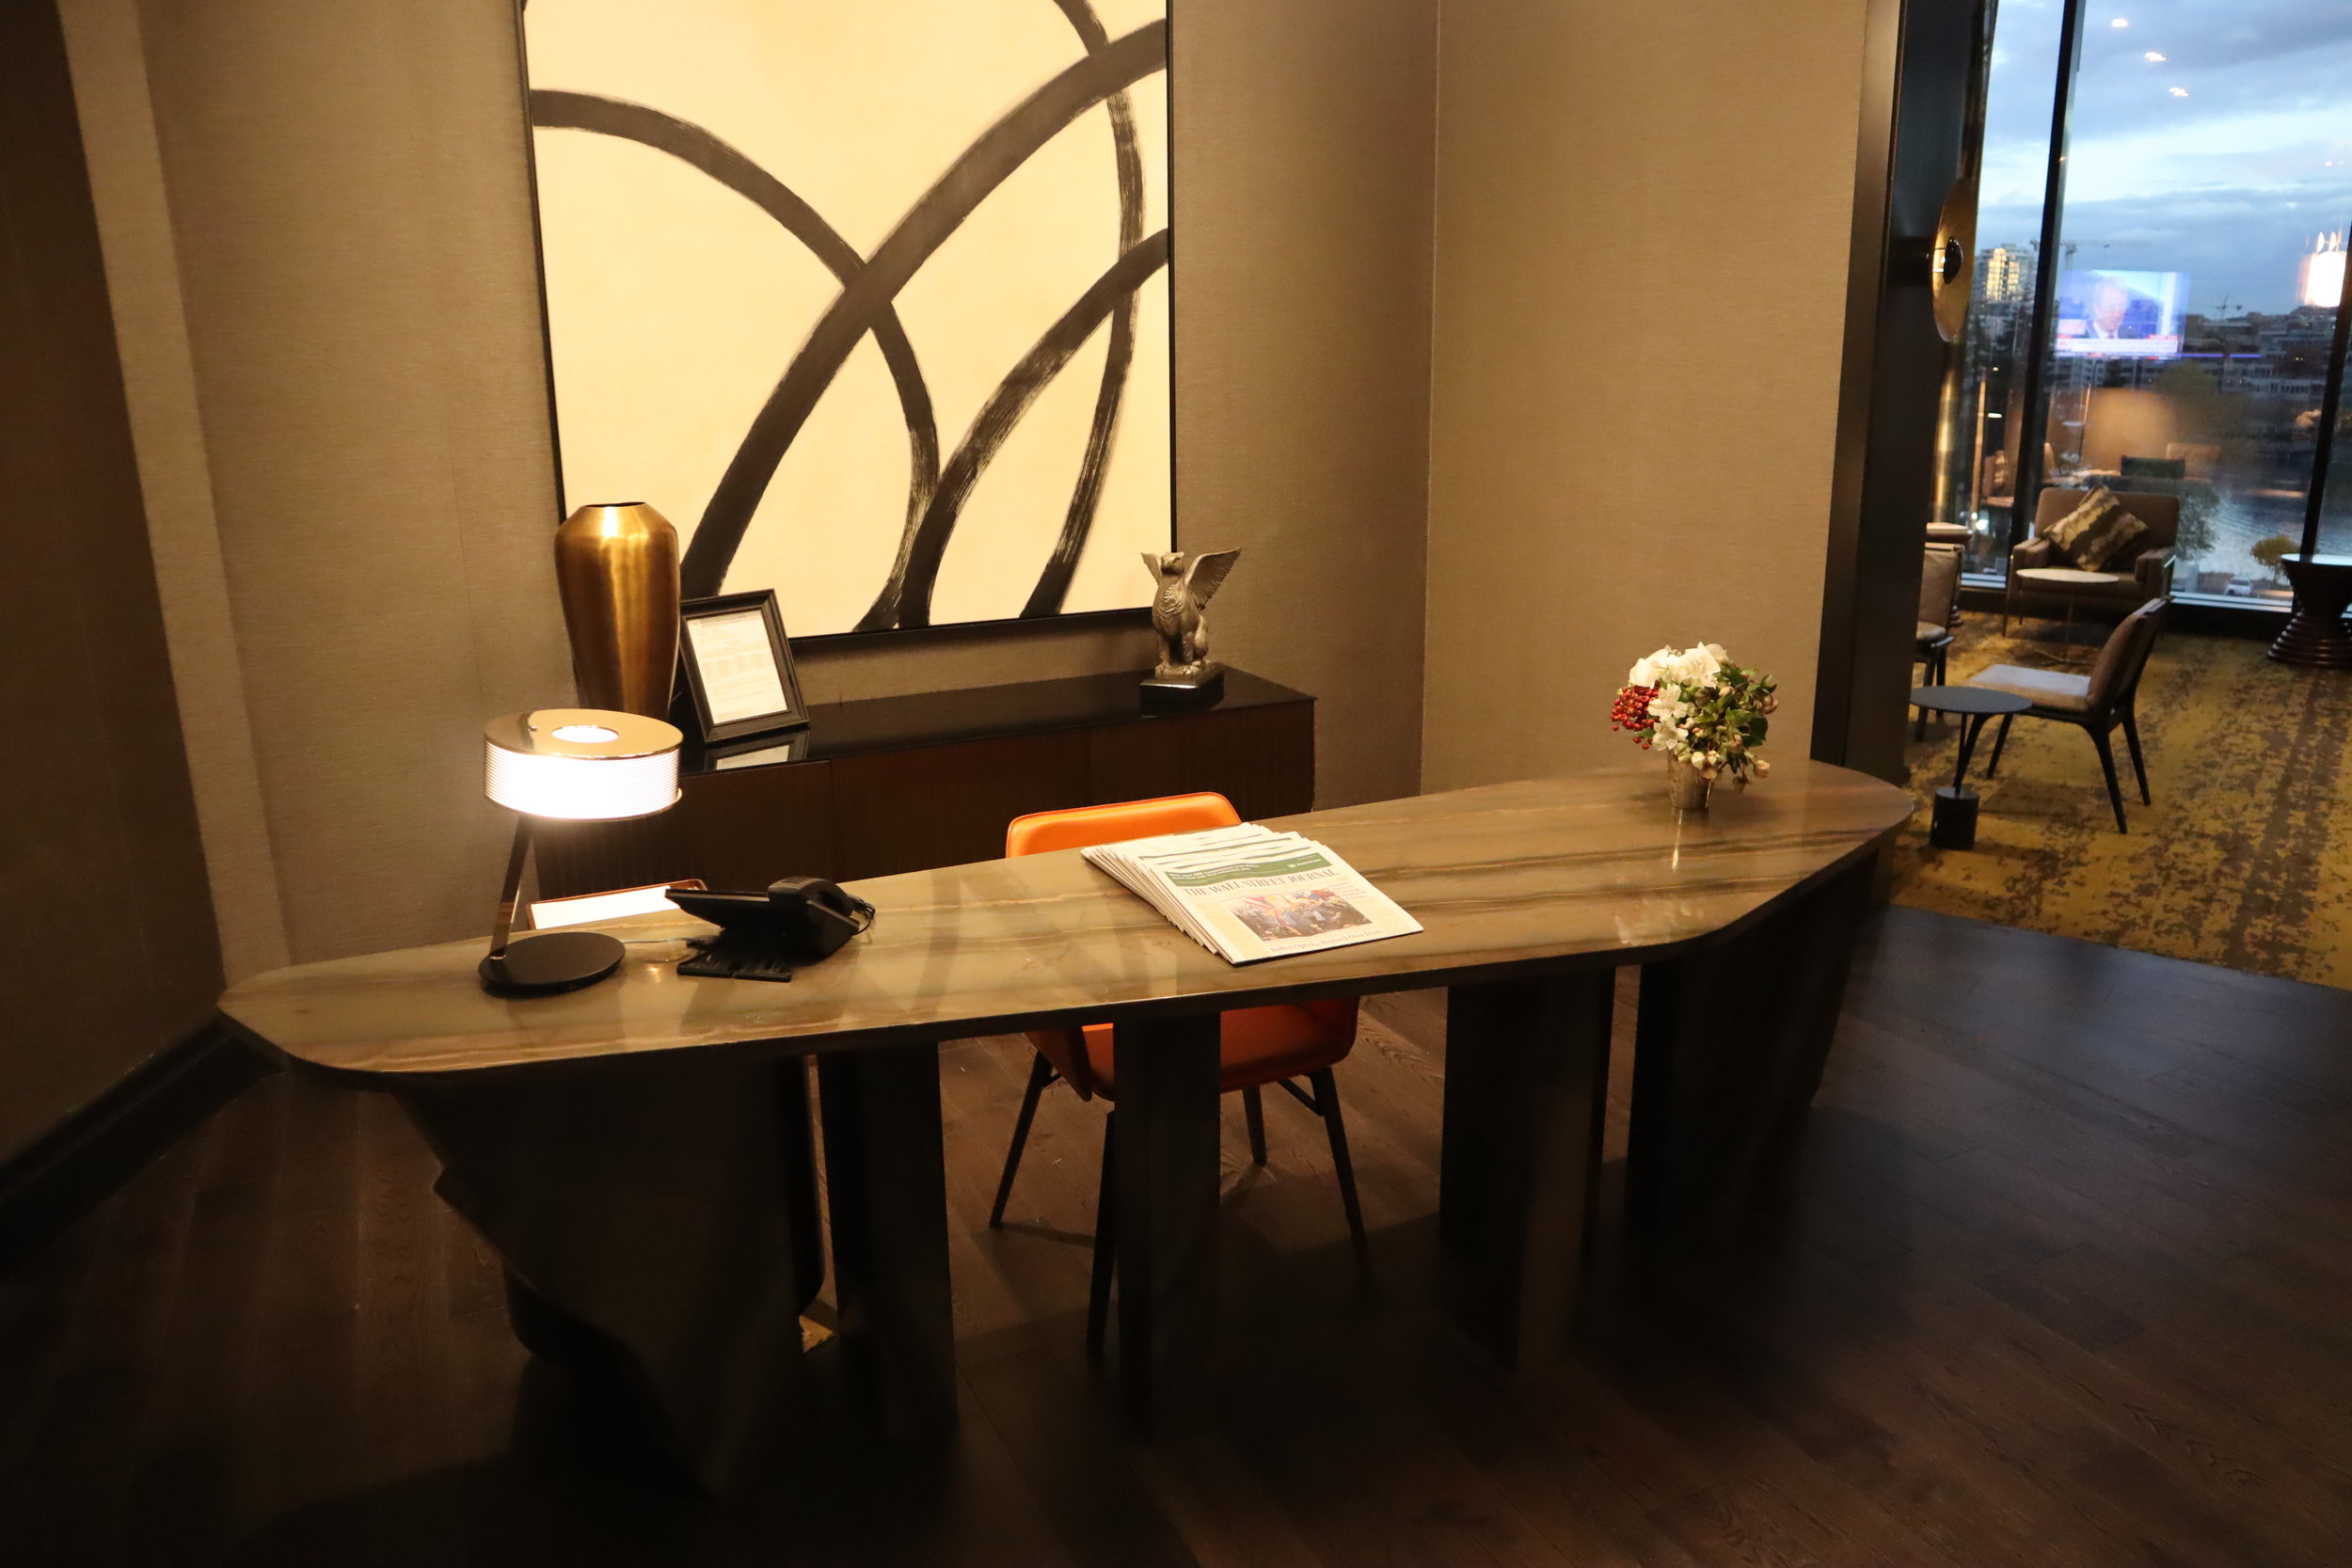 JW Marriott Parq Vancouver – Executive Lounge front desk